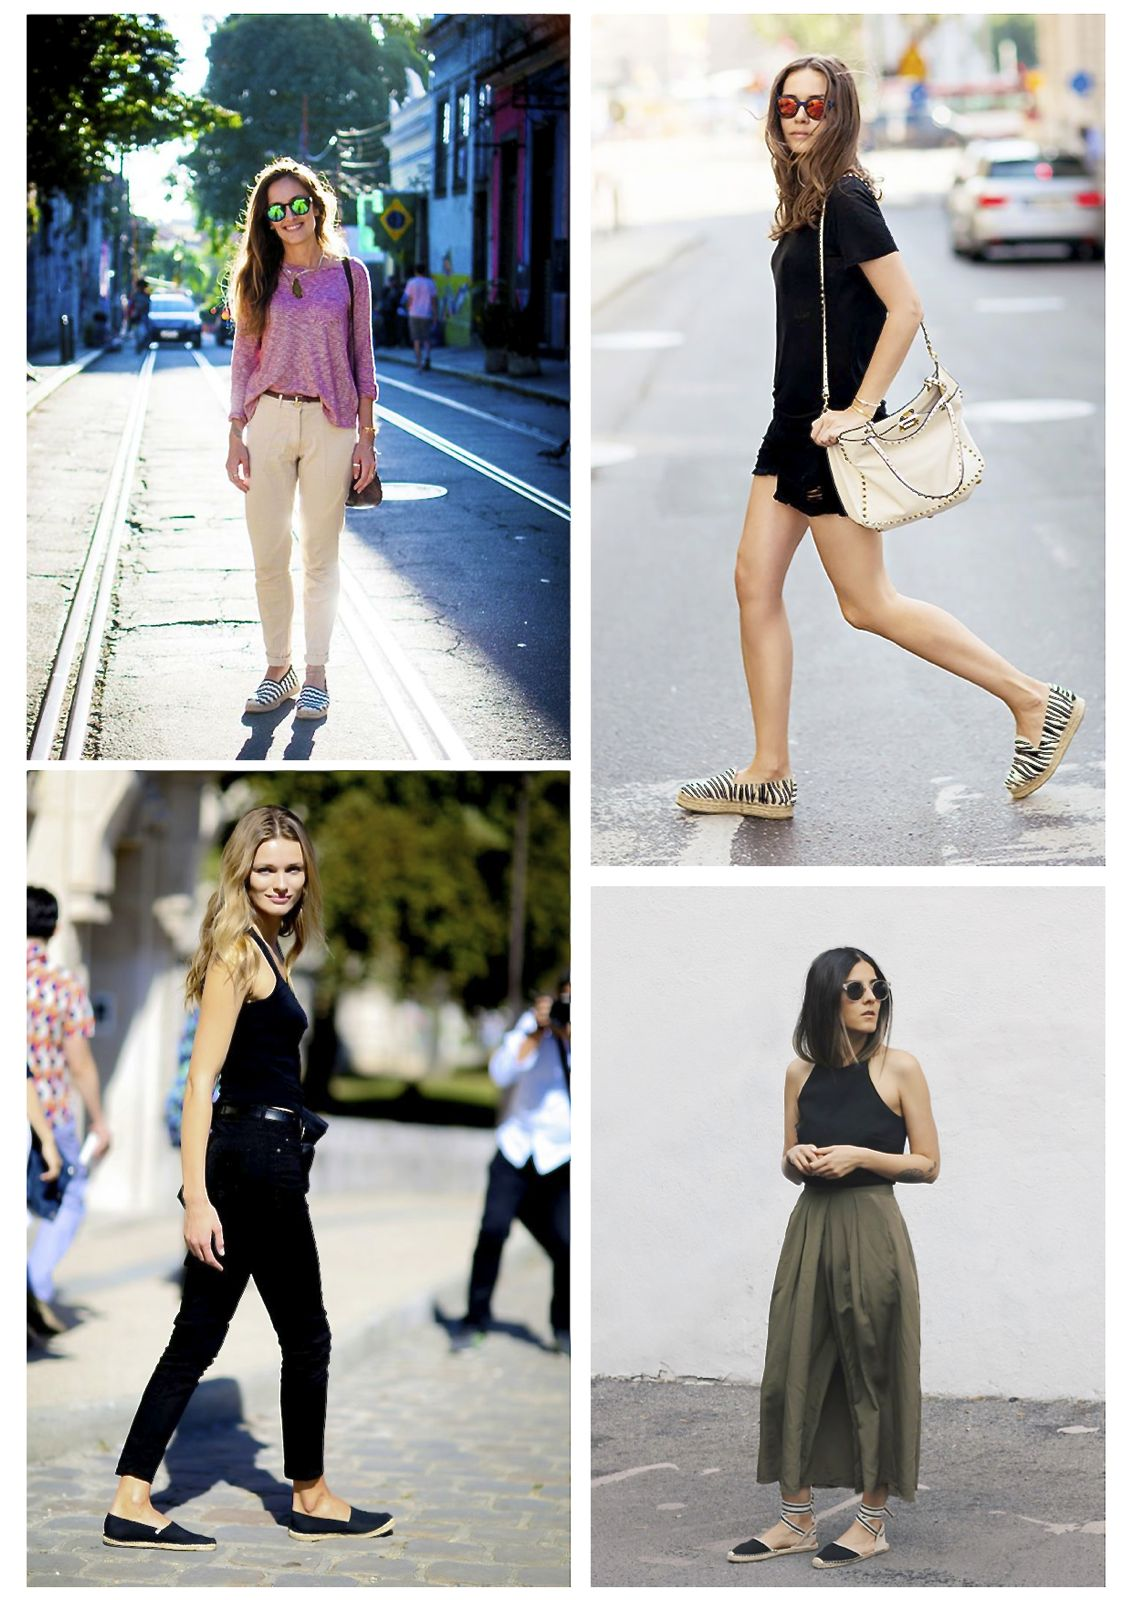 how-to-wear-espadrilles-street-style-espadrilles